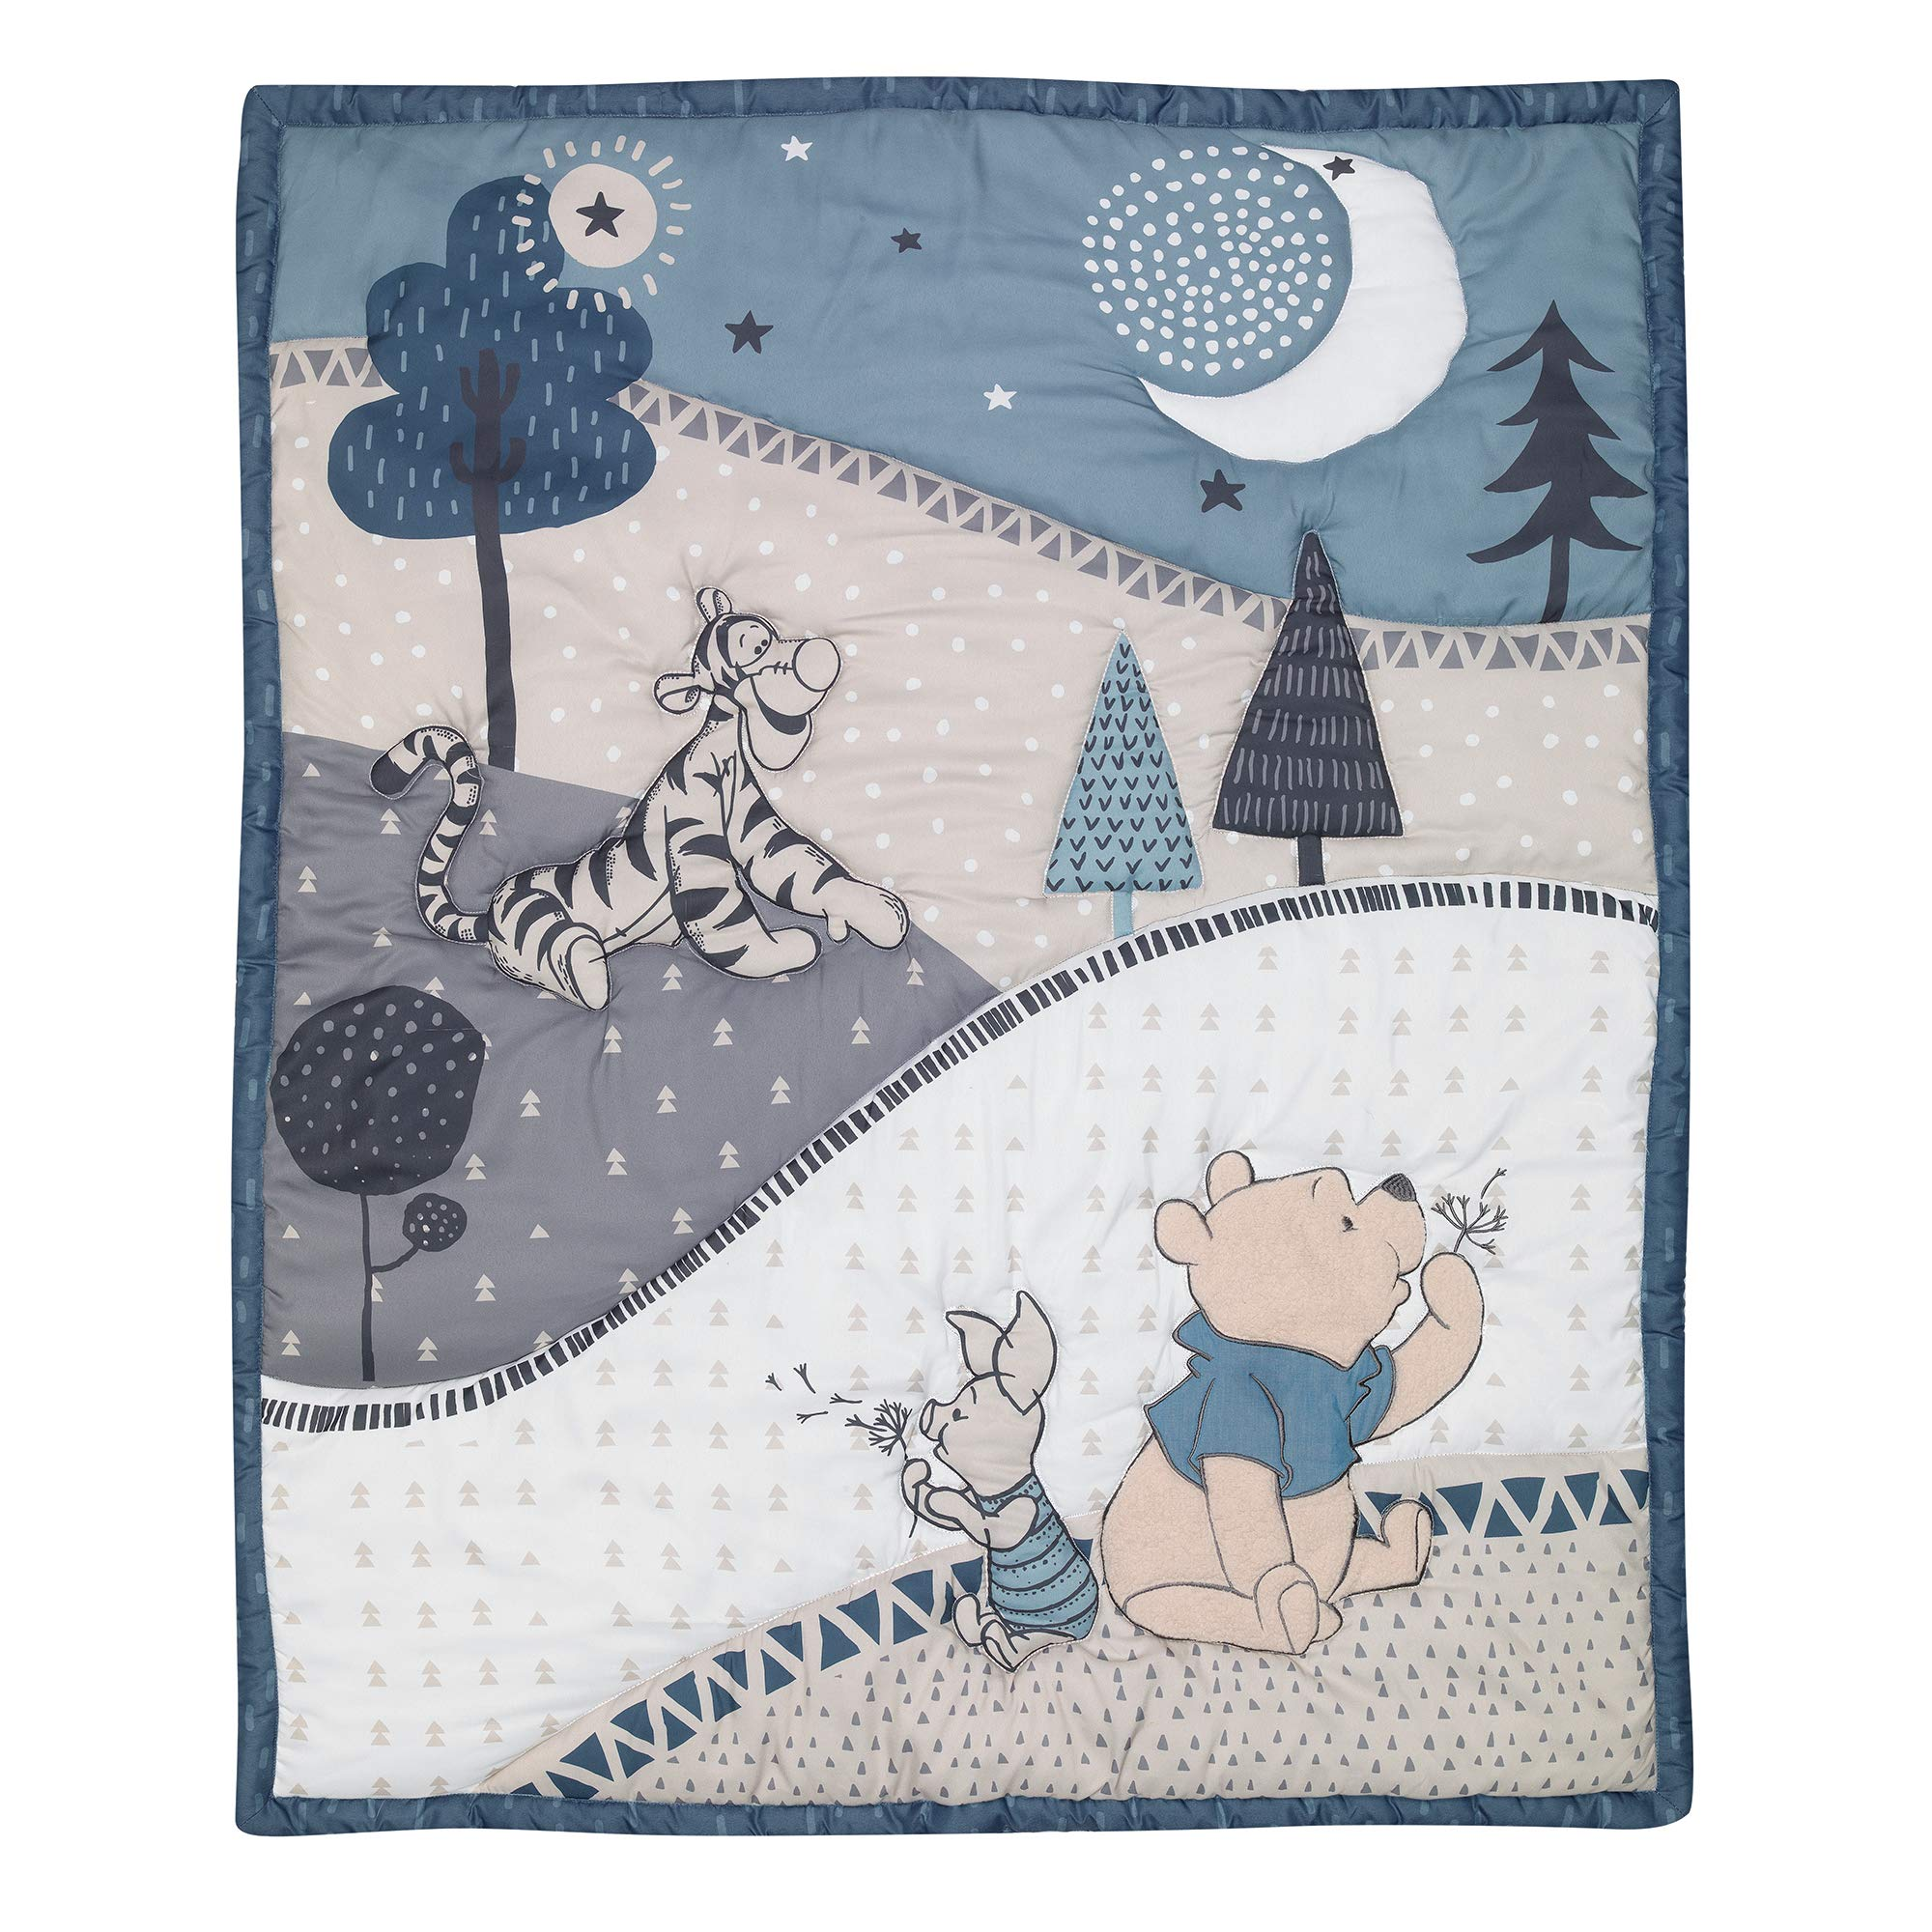 Lambs & Ivy Forever Pooh 3Piece Baby Crib Bedding Set, Blue by Lambs & Ivy (Image #3)